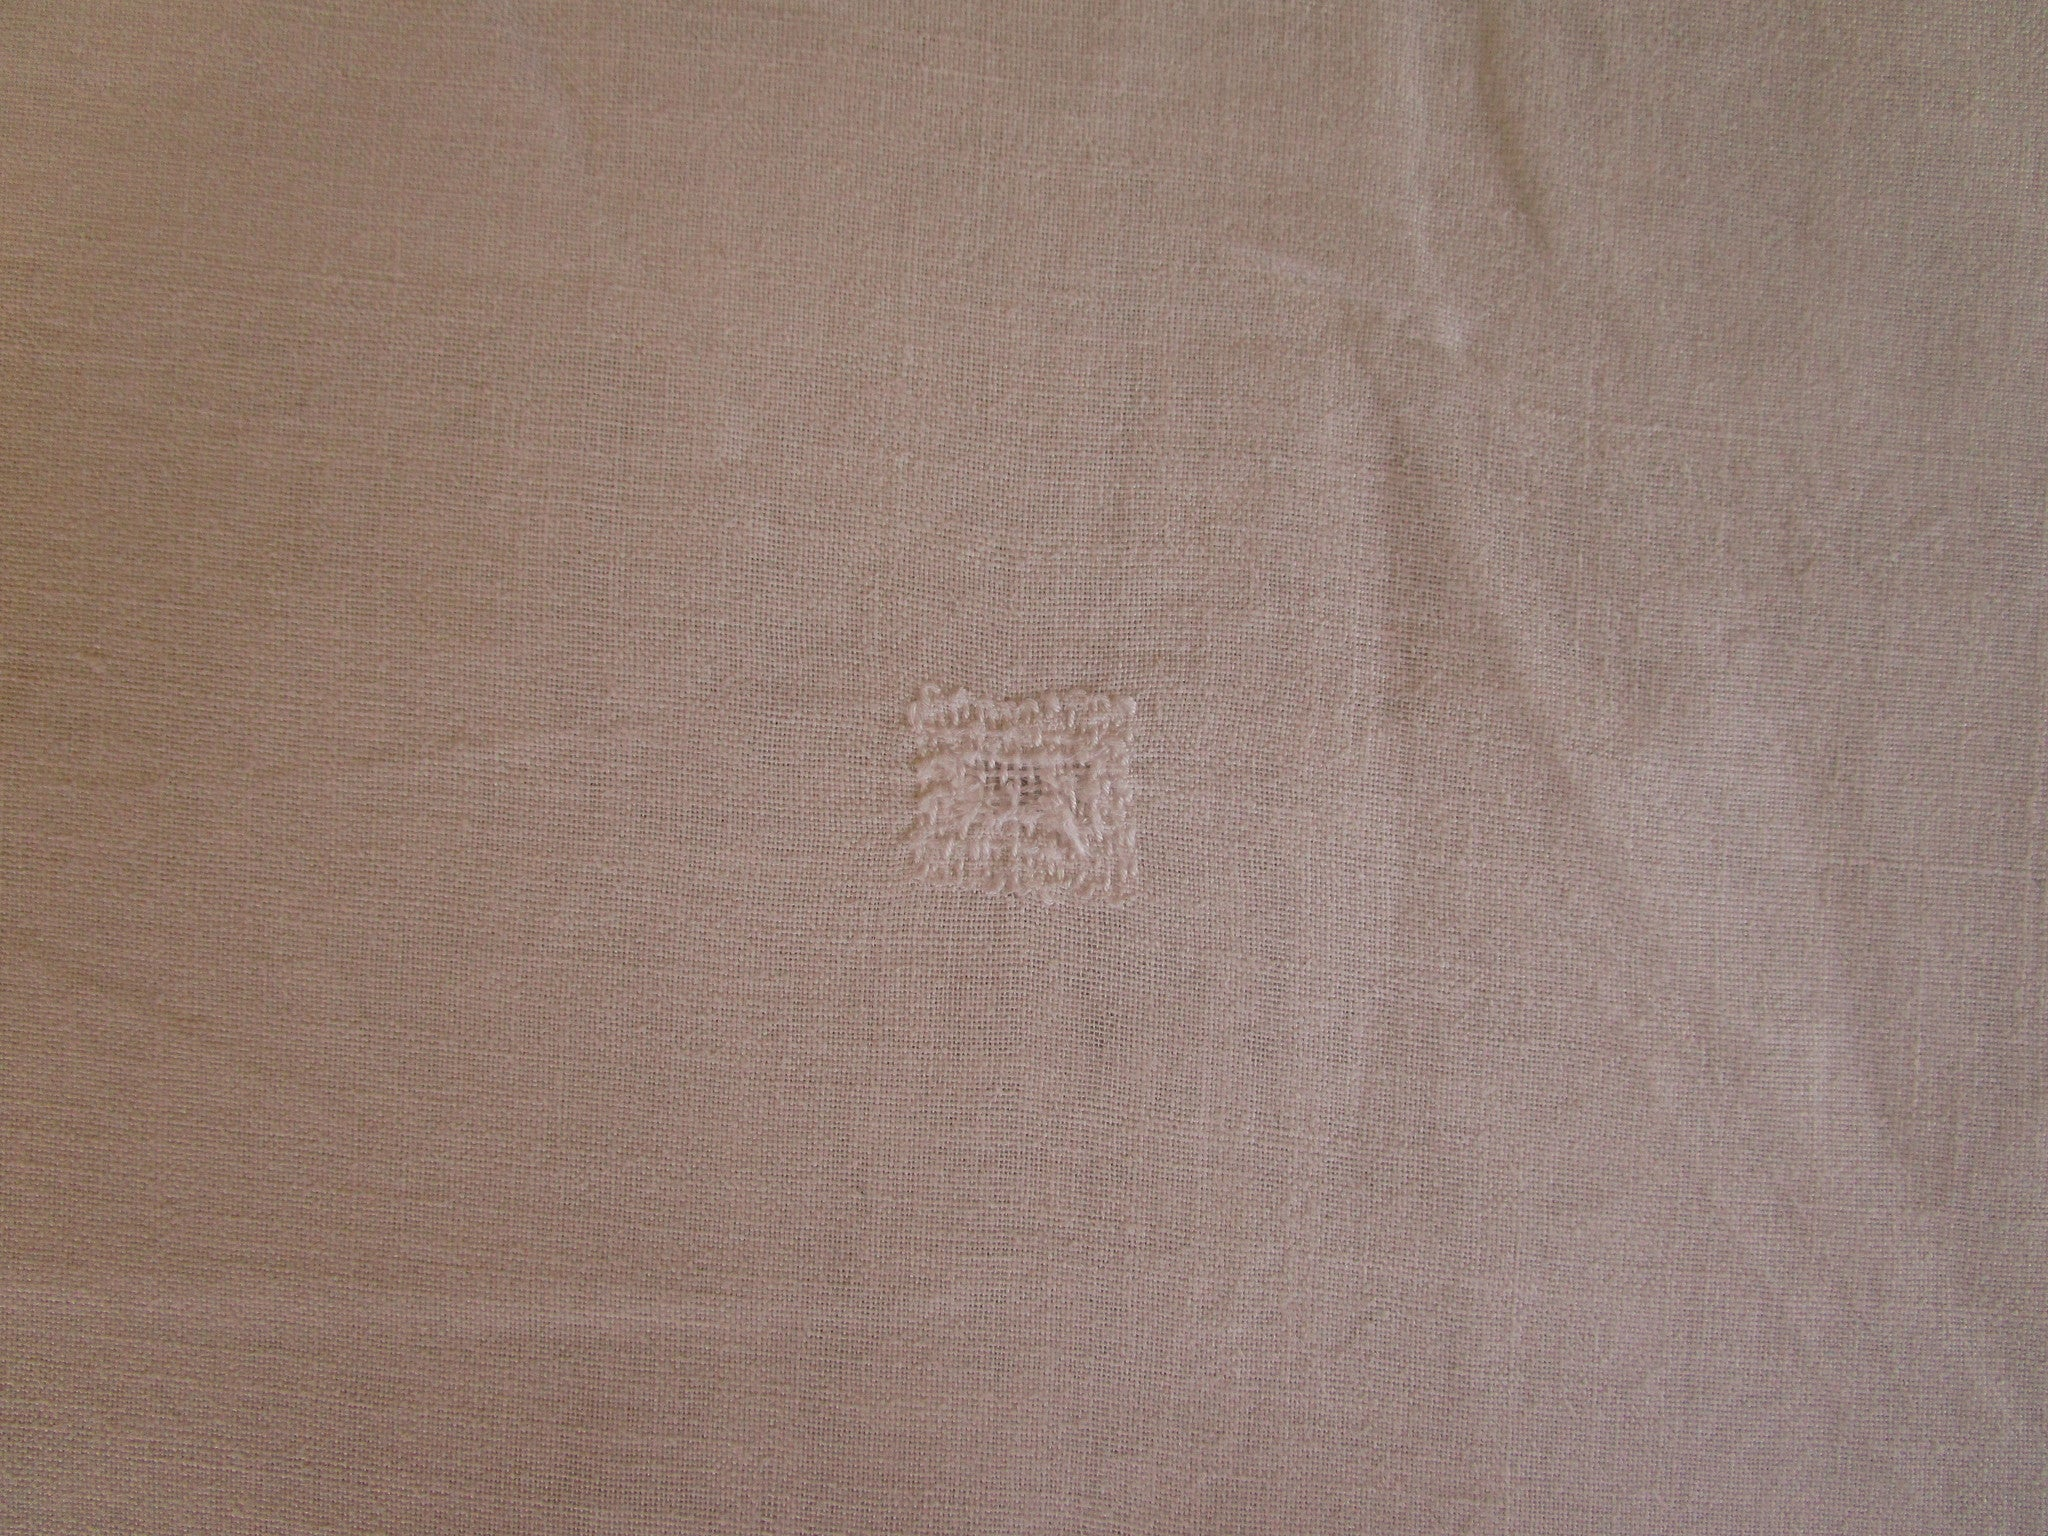 antique french linen bed sheet jb monogram 4